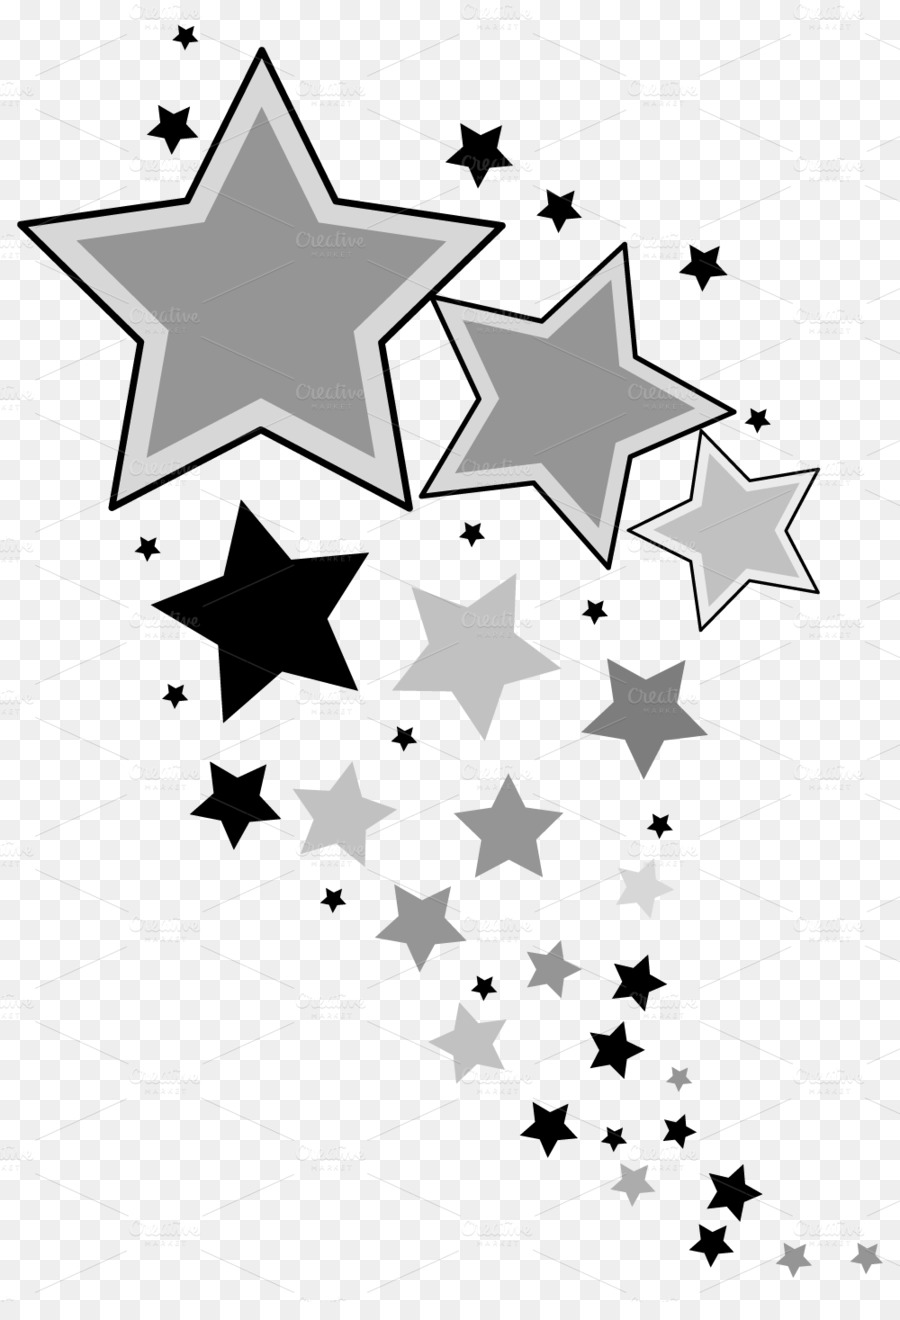 Black and white clipart star of show black and white library Winter Tree clipart - White, Black, Design, transparent clip art black and white library